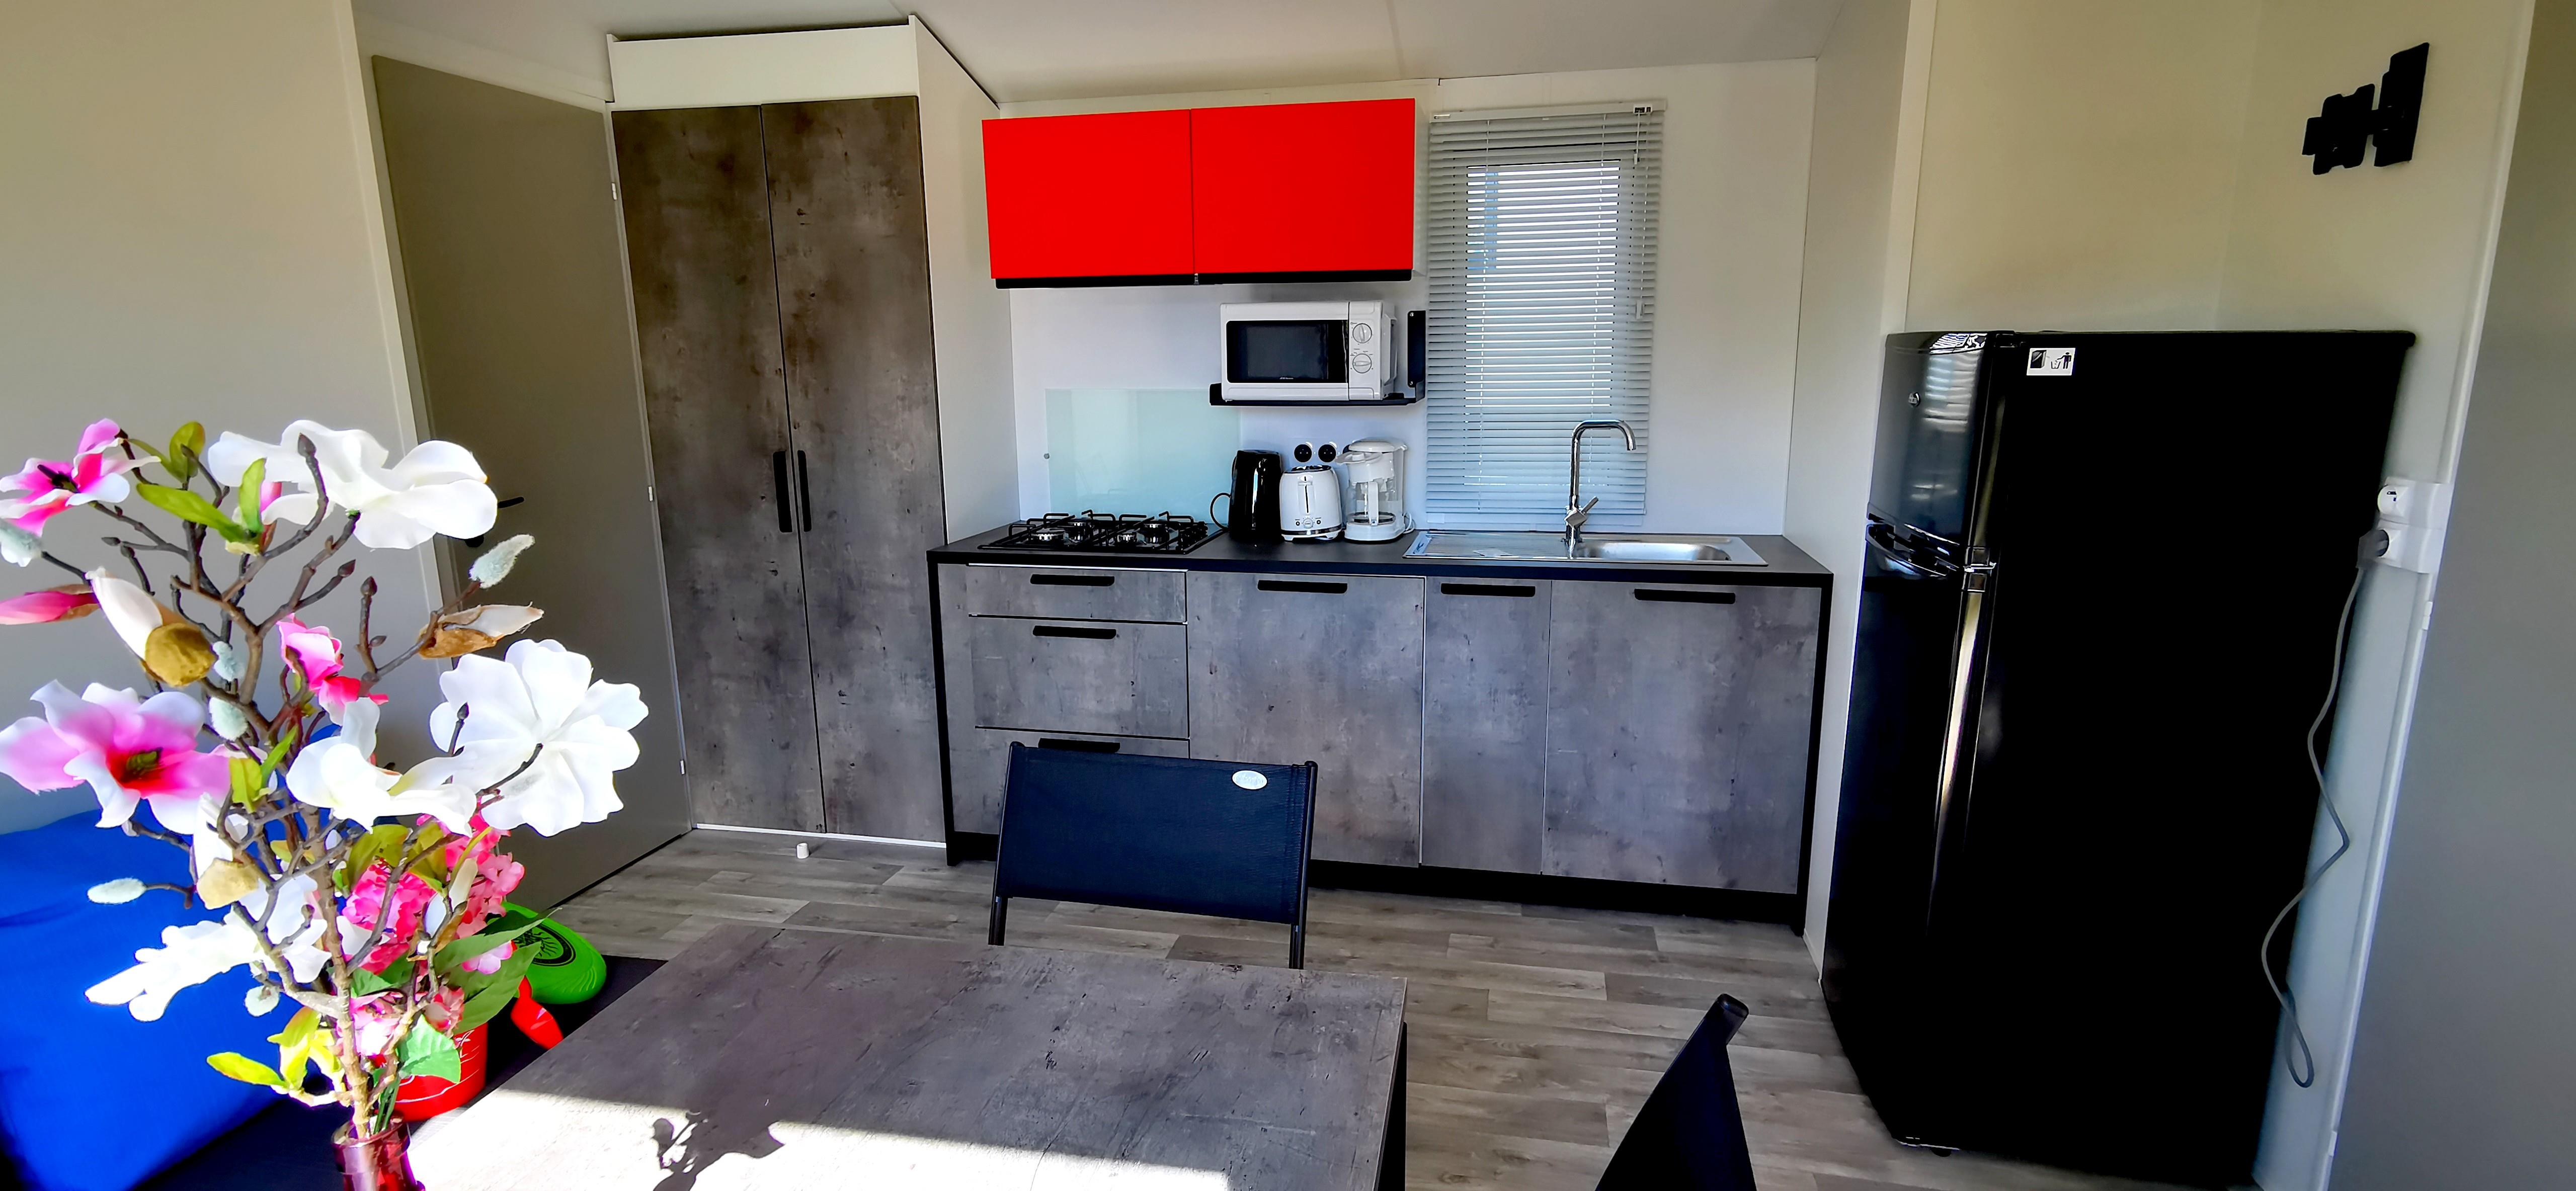 Cottage MALAGA 2020-35m² (sheltered terrace + air co)